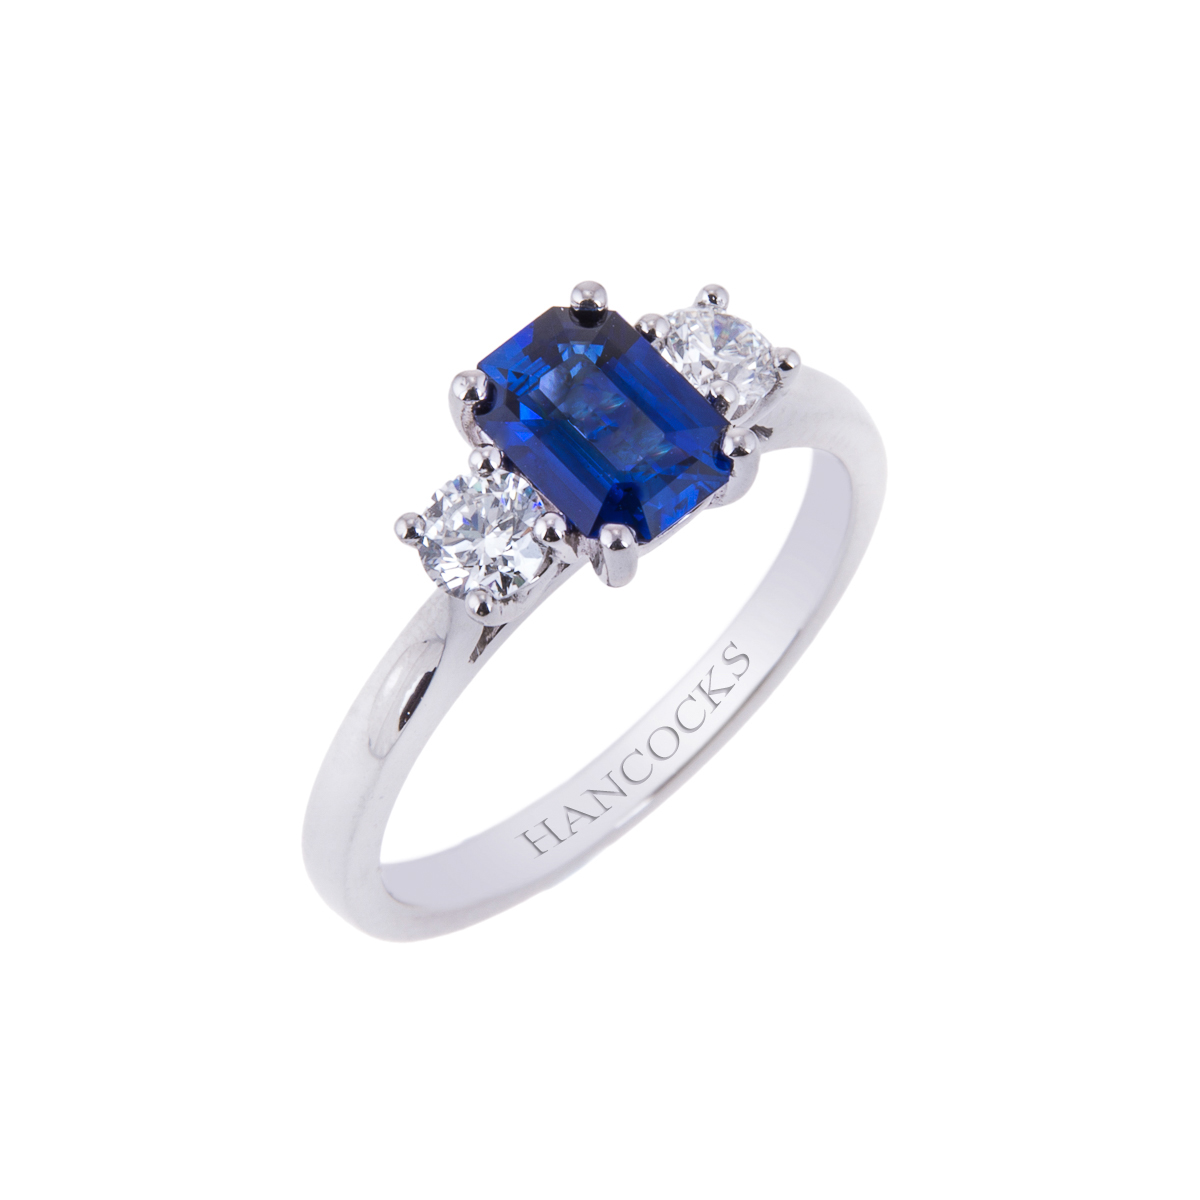 emerald cut sapphire with brilliant cut diamond mounted as a three stone platinum ring